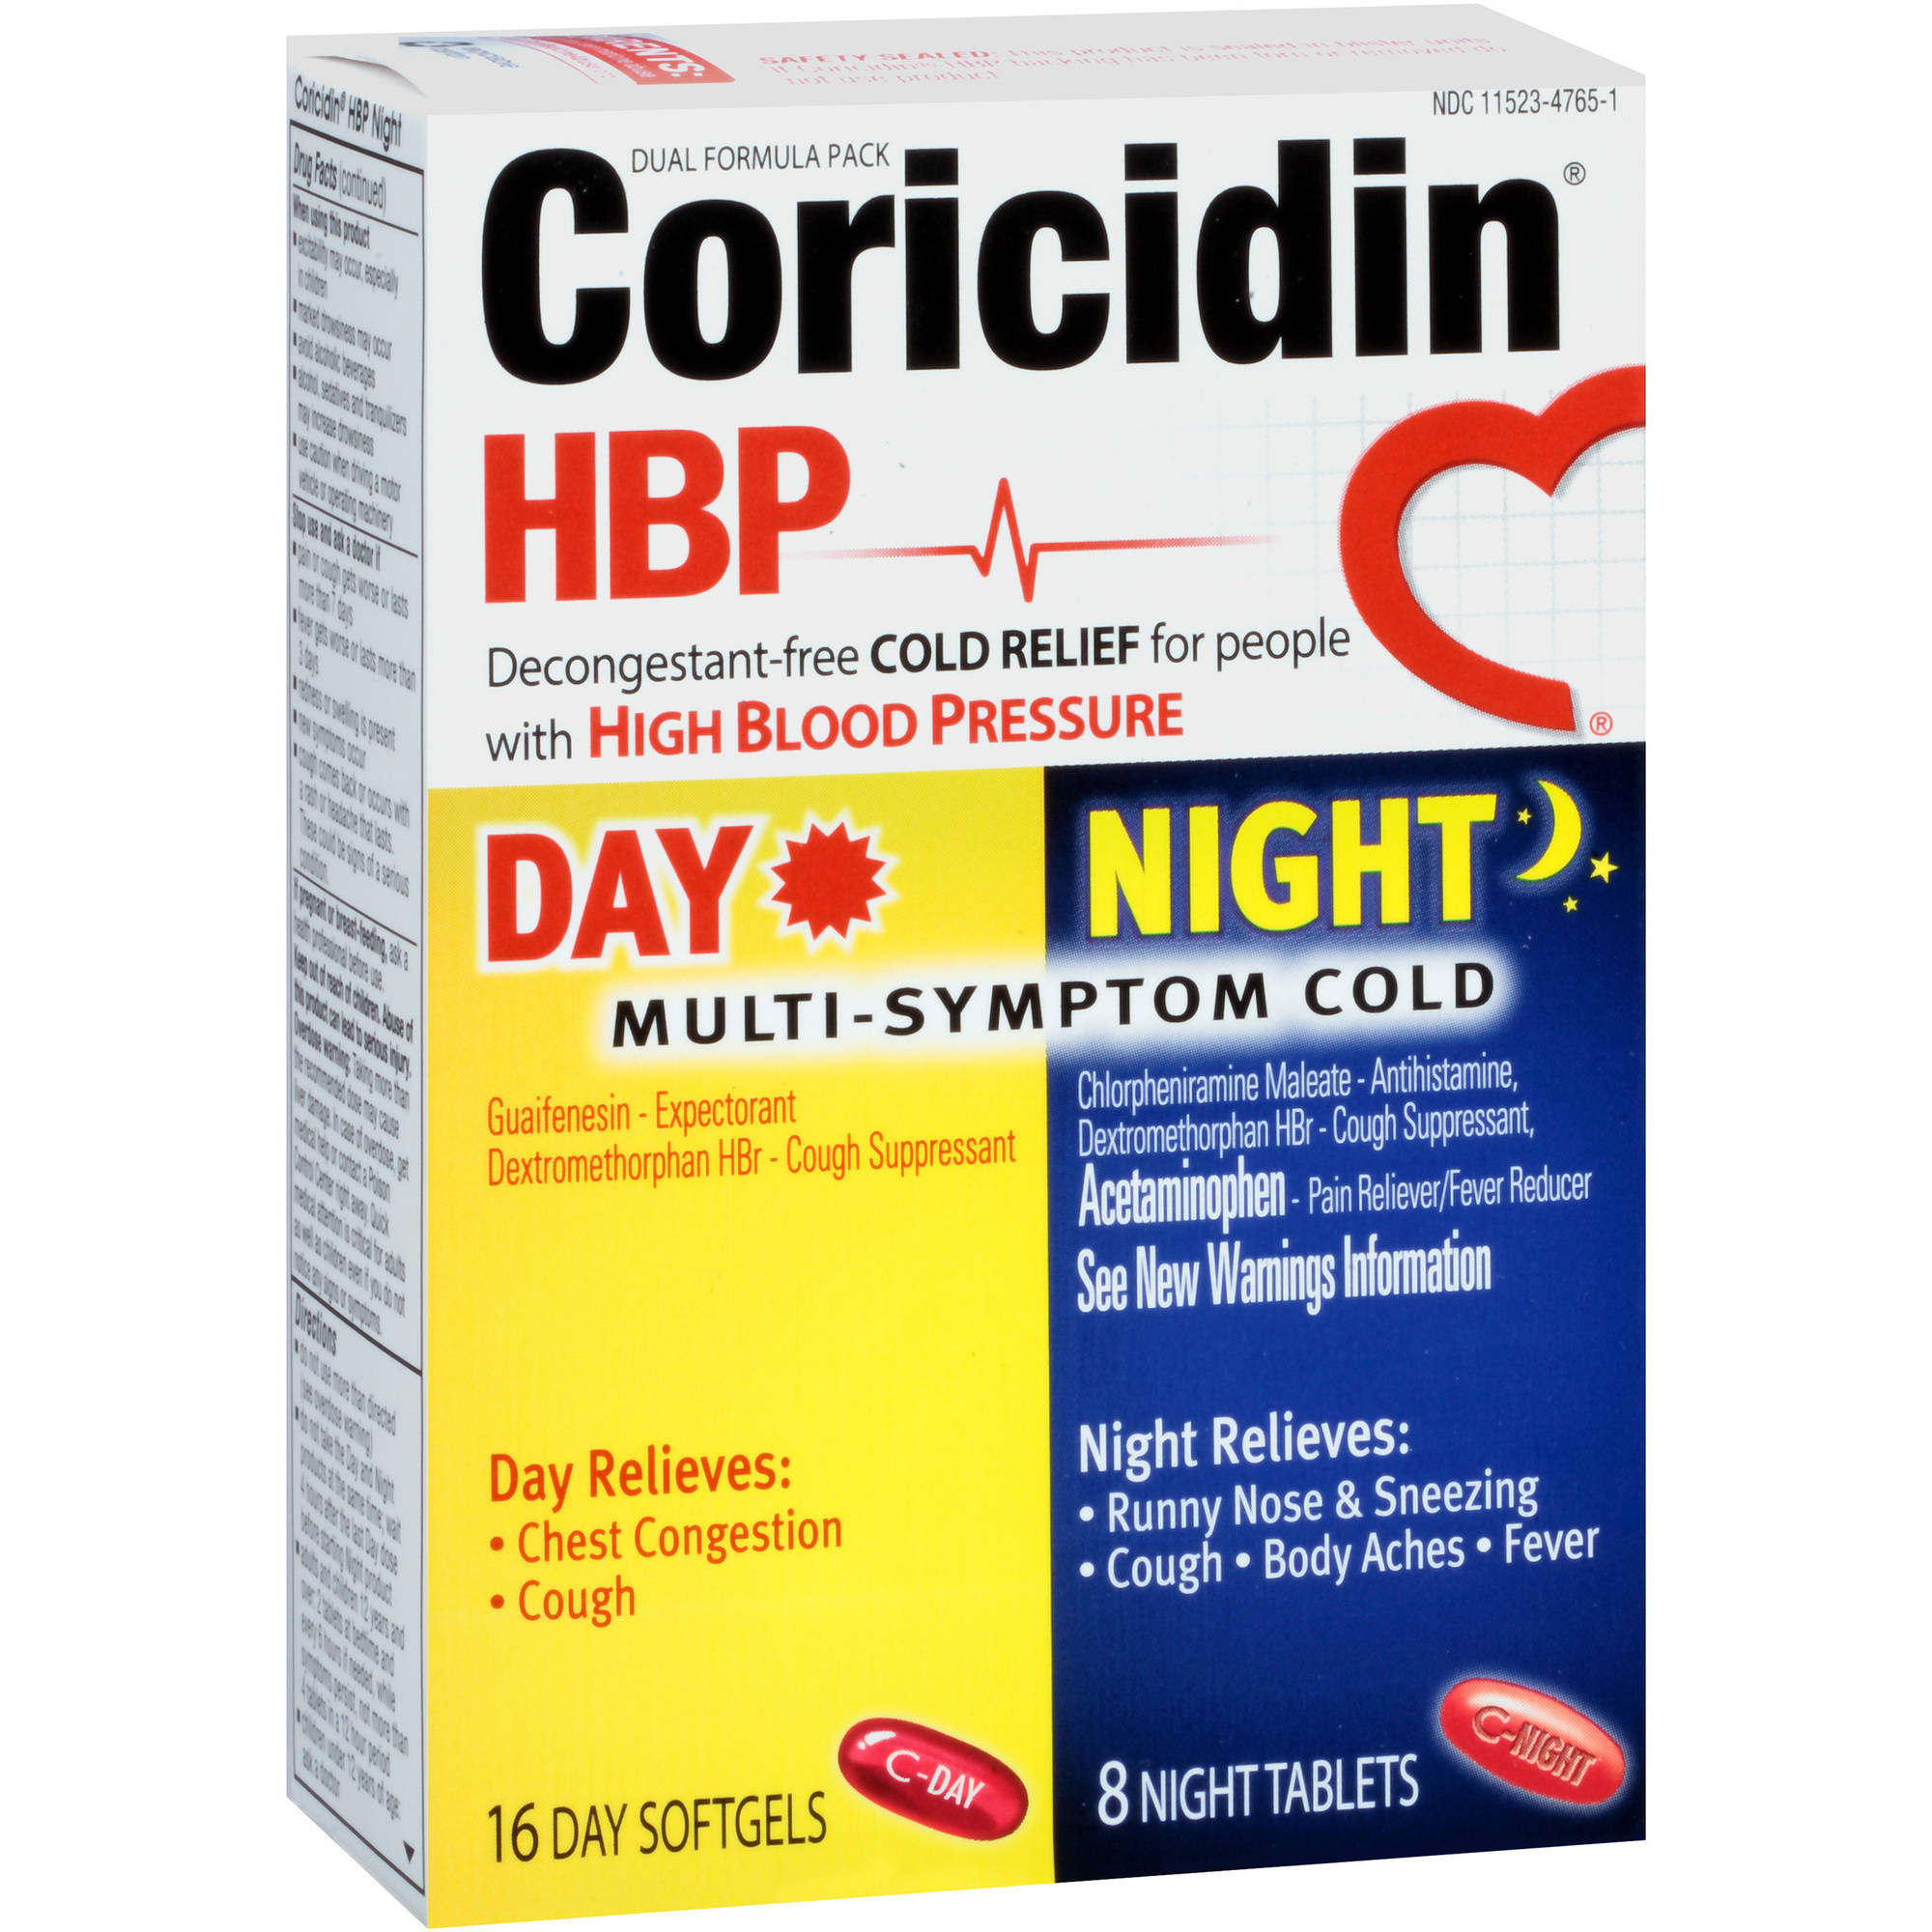 Coricidin HBP Day/Night Multi-Symptom Cold Relief, 24 count